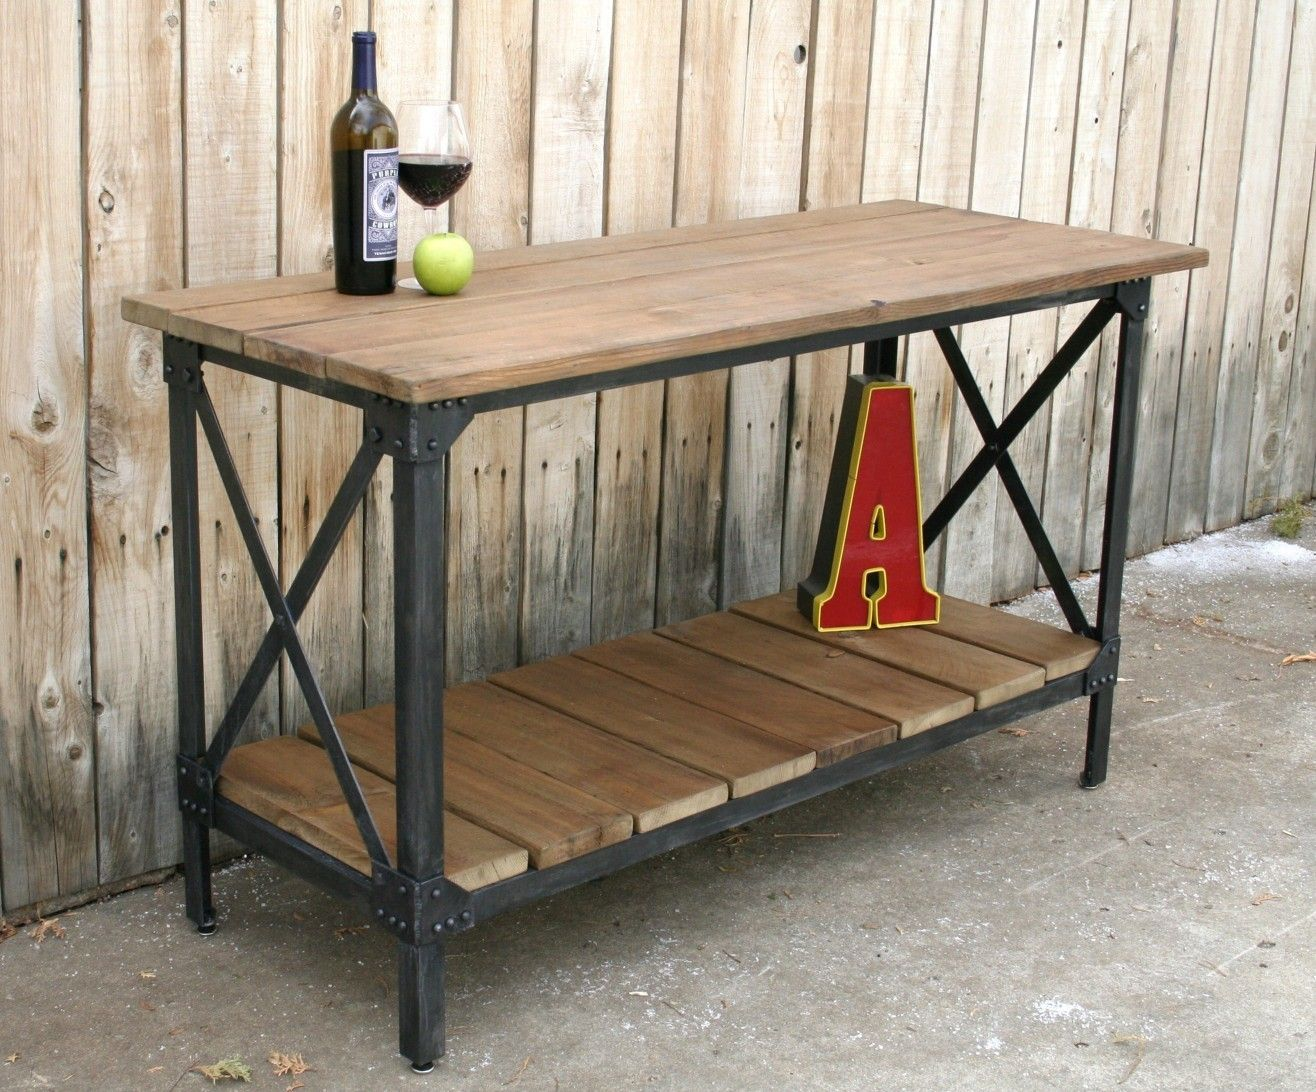 Wood And Metal Patio Furniture Handmade Scrap Metal And Reclaimed Wood Industrial Style By J Metal Furniture Industrial Style Furniture Rustic Console Tables